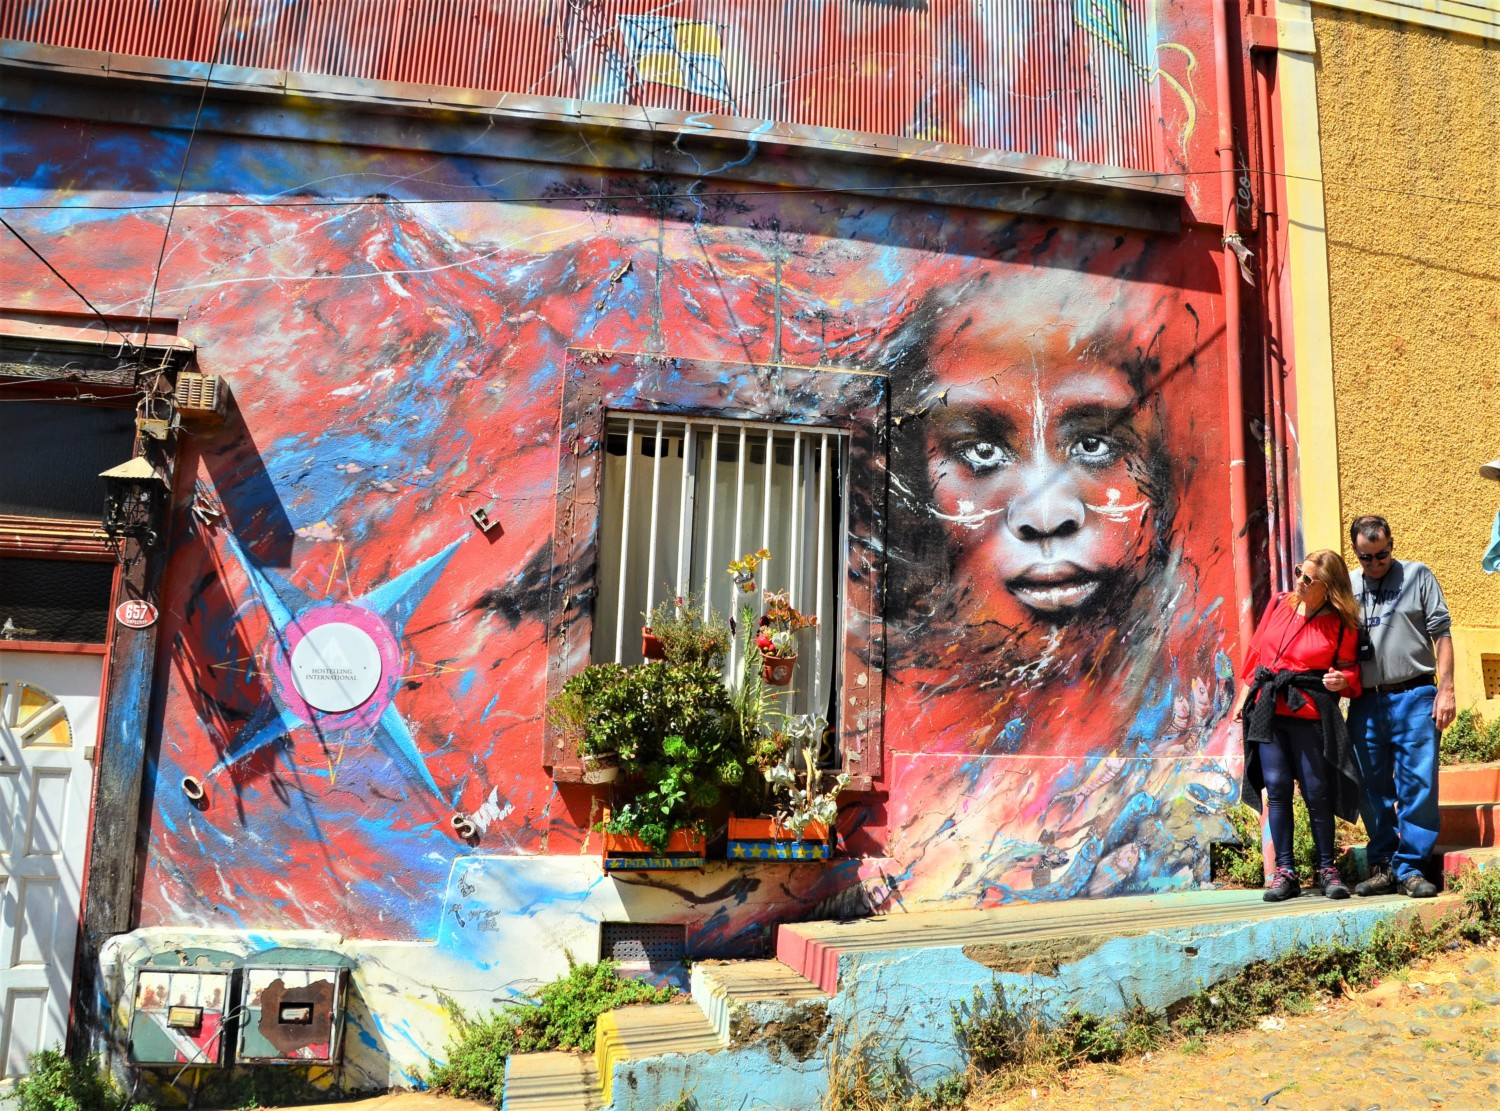 Hit the Road: In Valparaiso, Chile, murals take street art to a whole new level